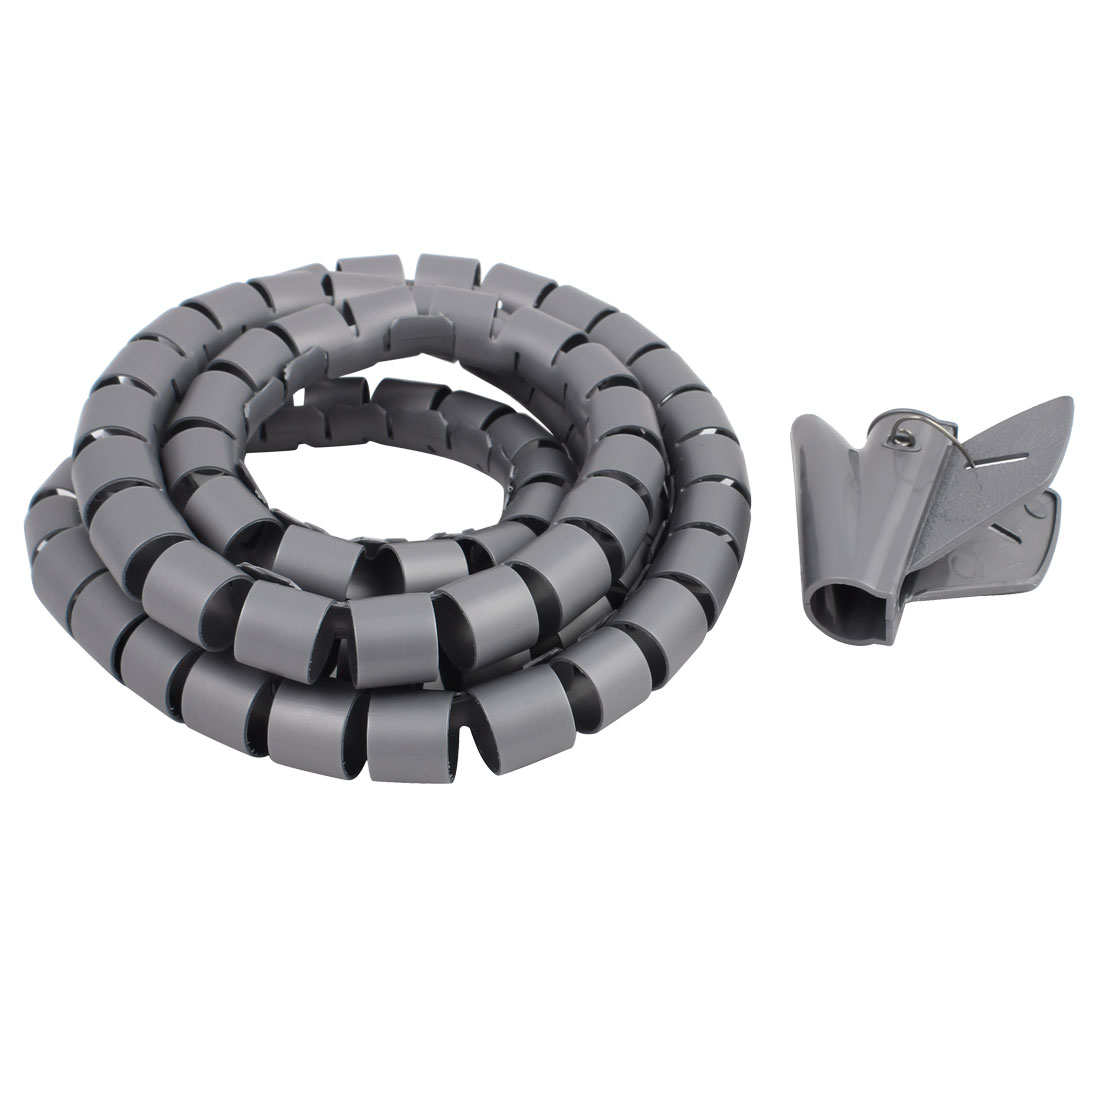 20mm Flexible Spiral Tube Cable Wire Wrap Computer Manage Cord Gray ...